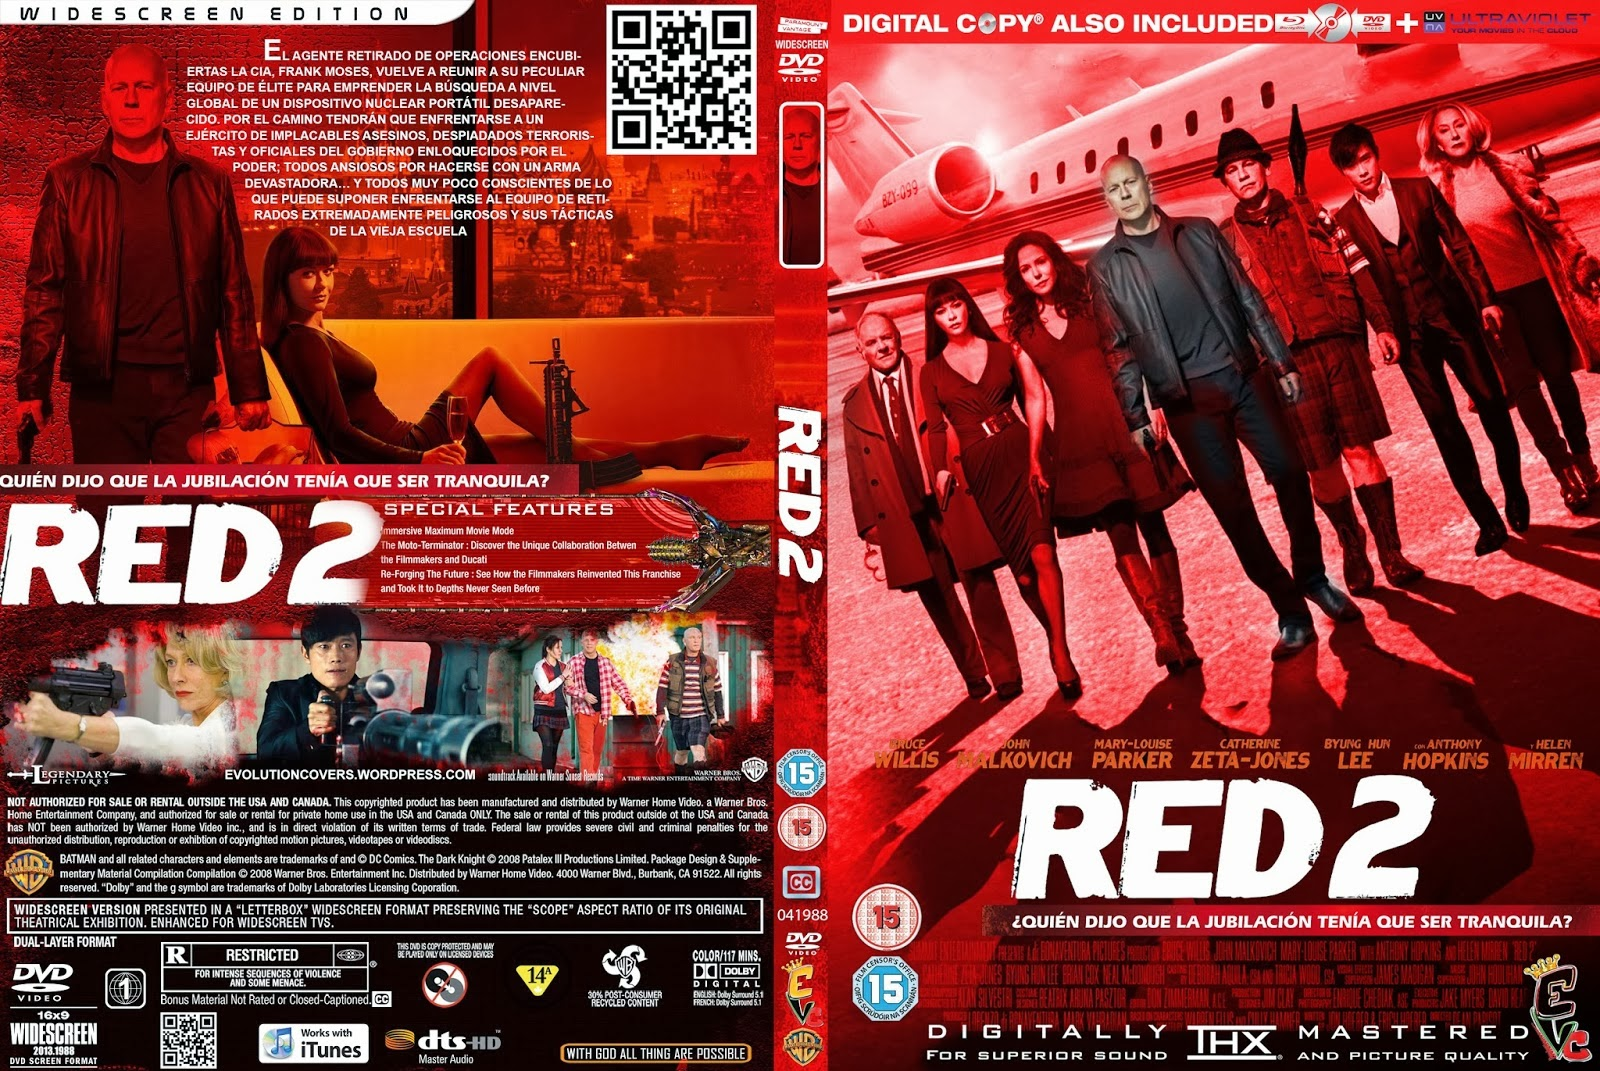 Red 2 2013 Dvd Cover R...